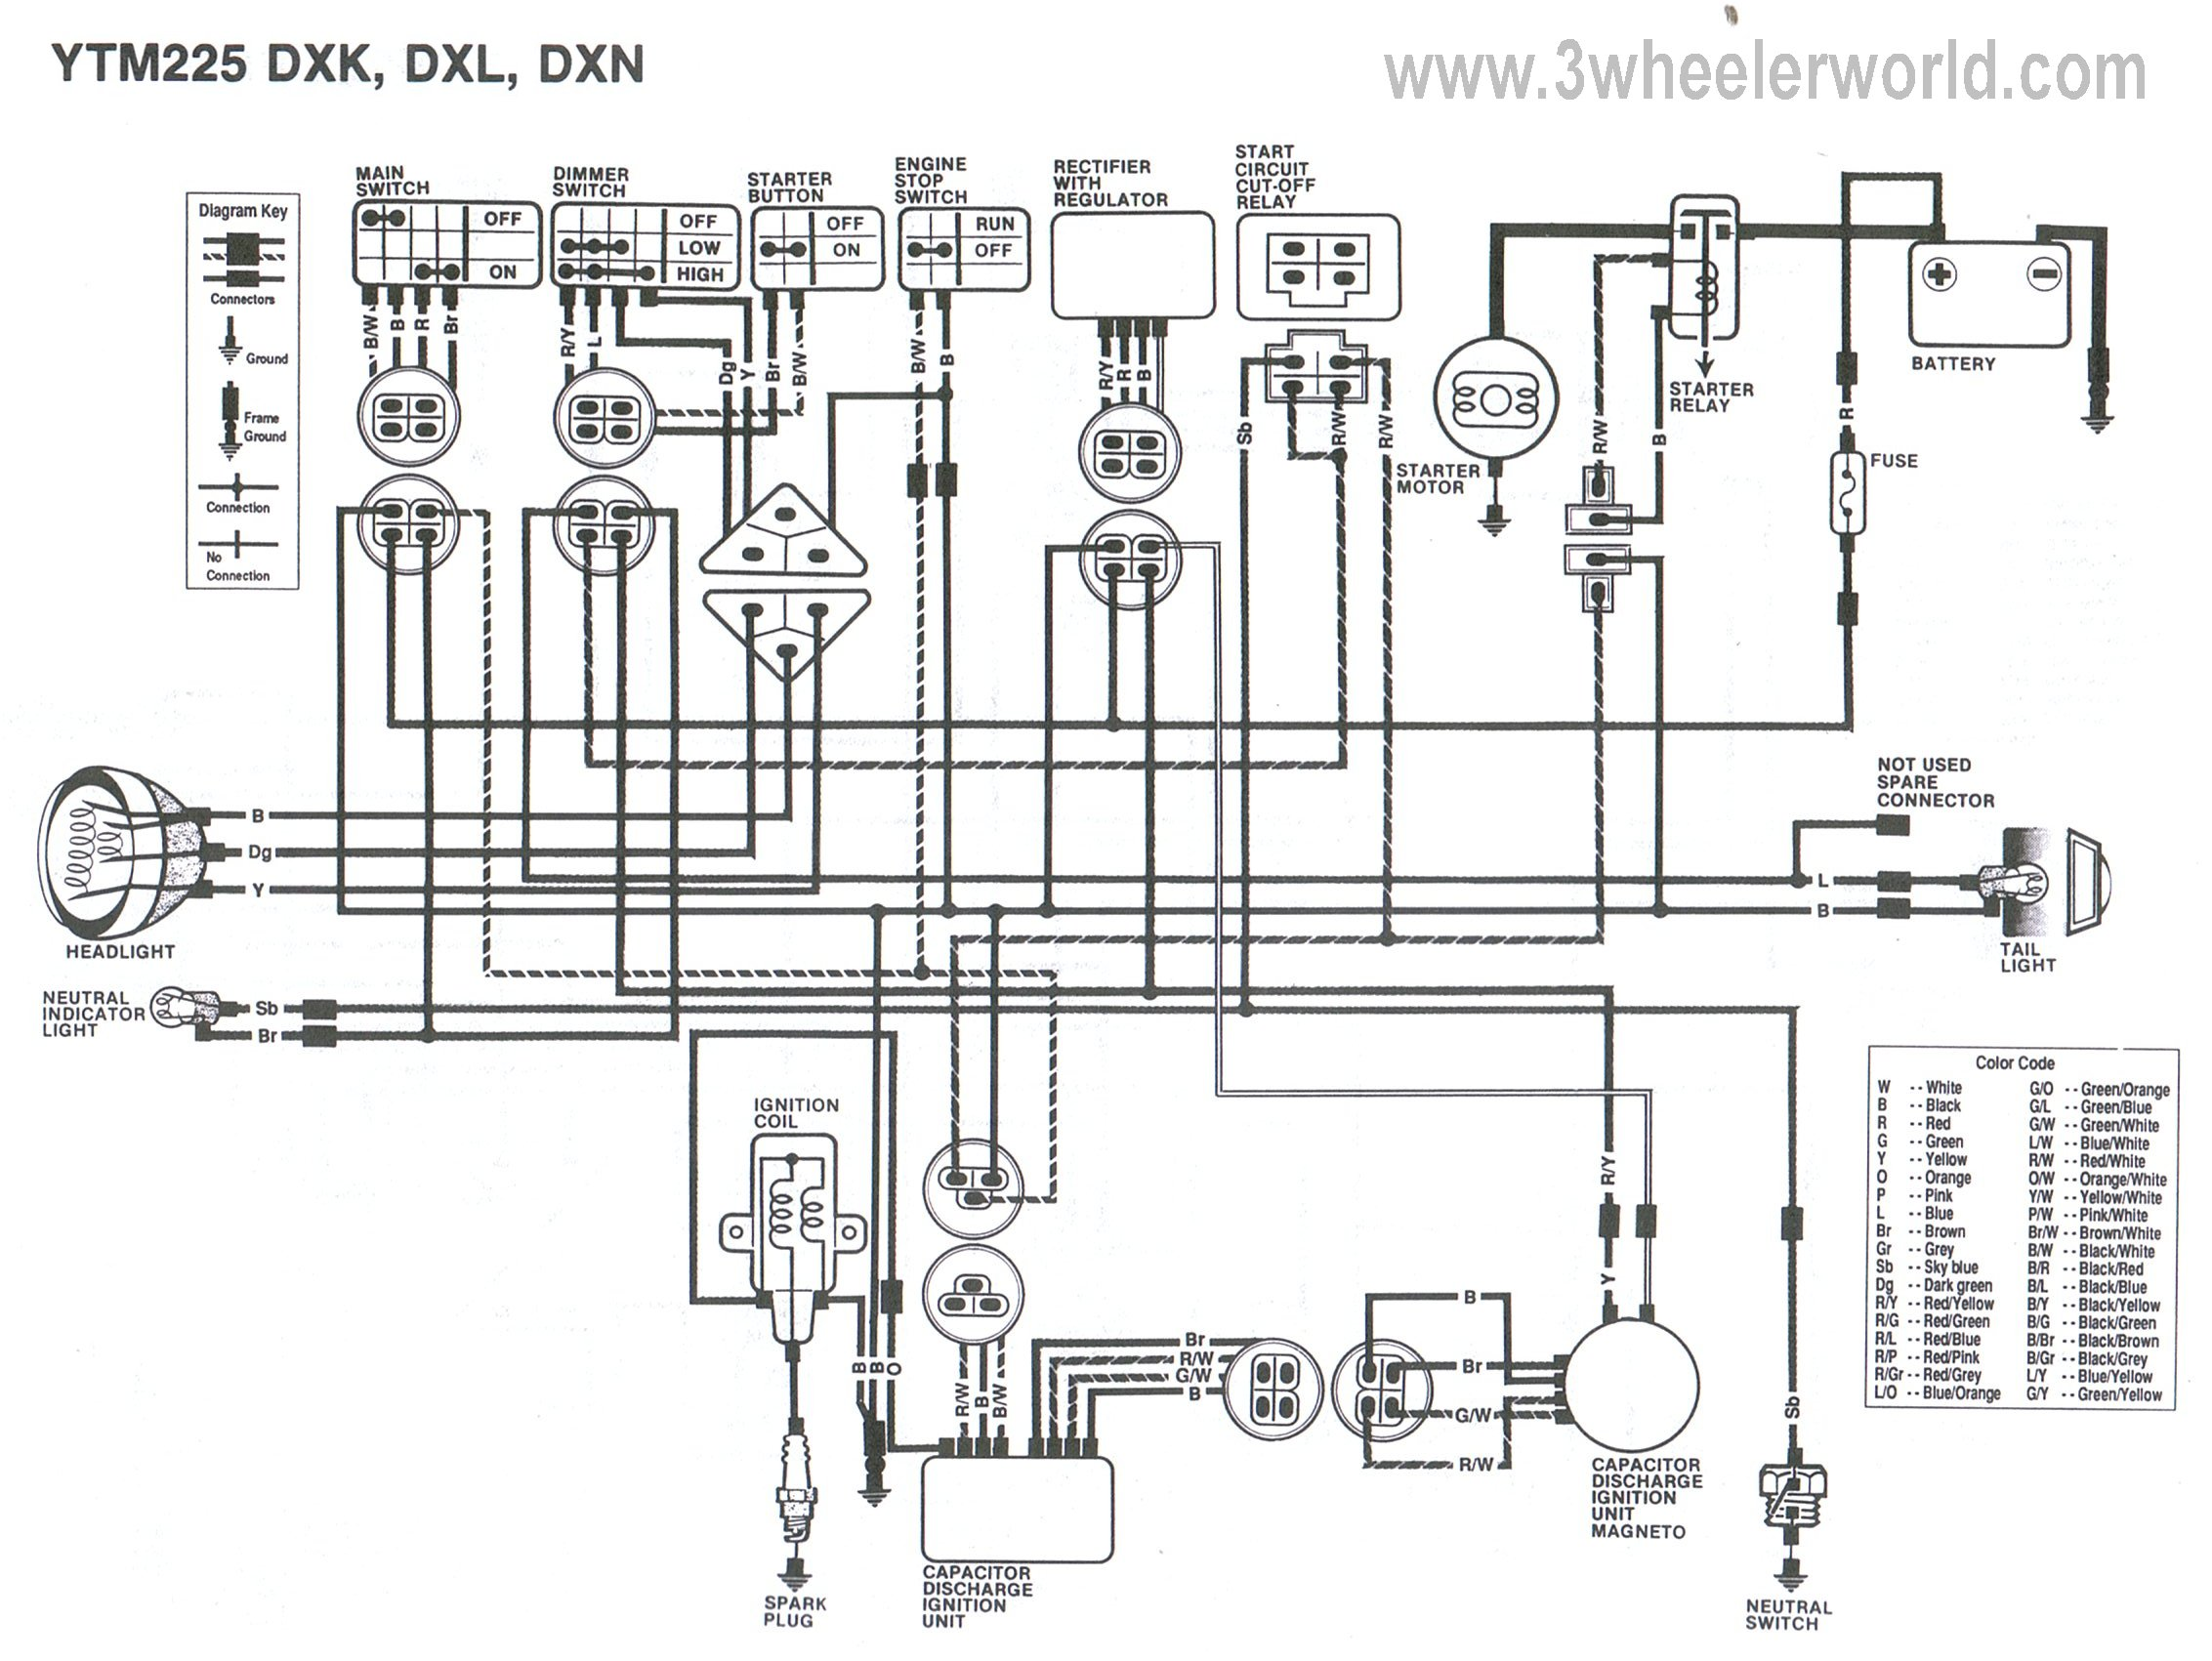 YTM225DXKDXLDXN 3 wheeler world tech help yamaha wiring diagrams 1983 honda atc 200 wiring diagram at webbmarketing.co